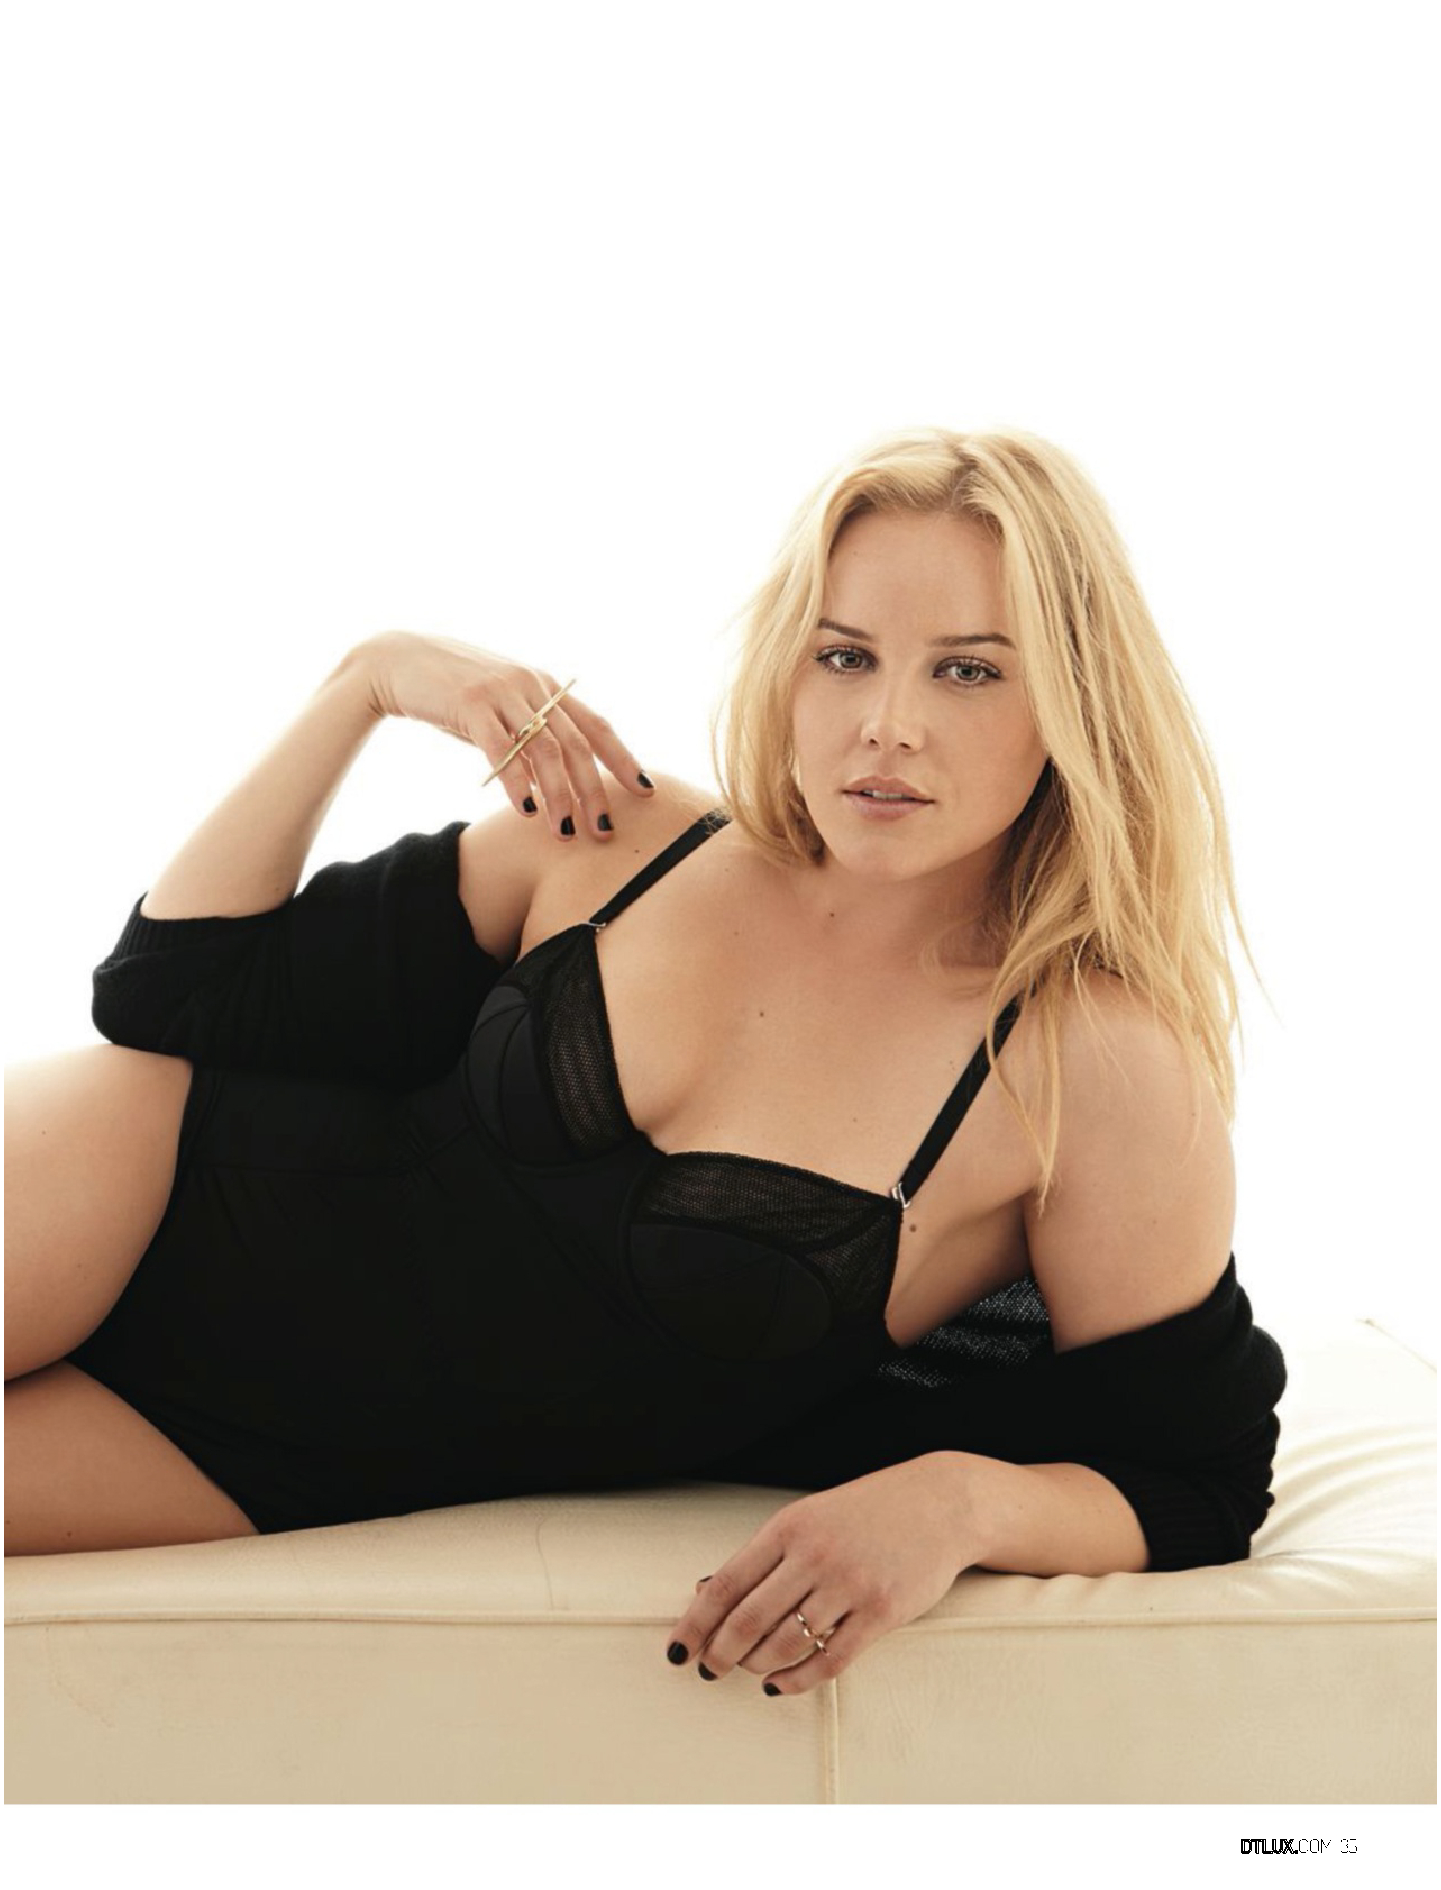 Balke Polster Abbie Cornish Dt Spain 04 Gotceleb